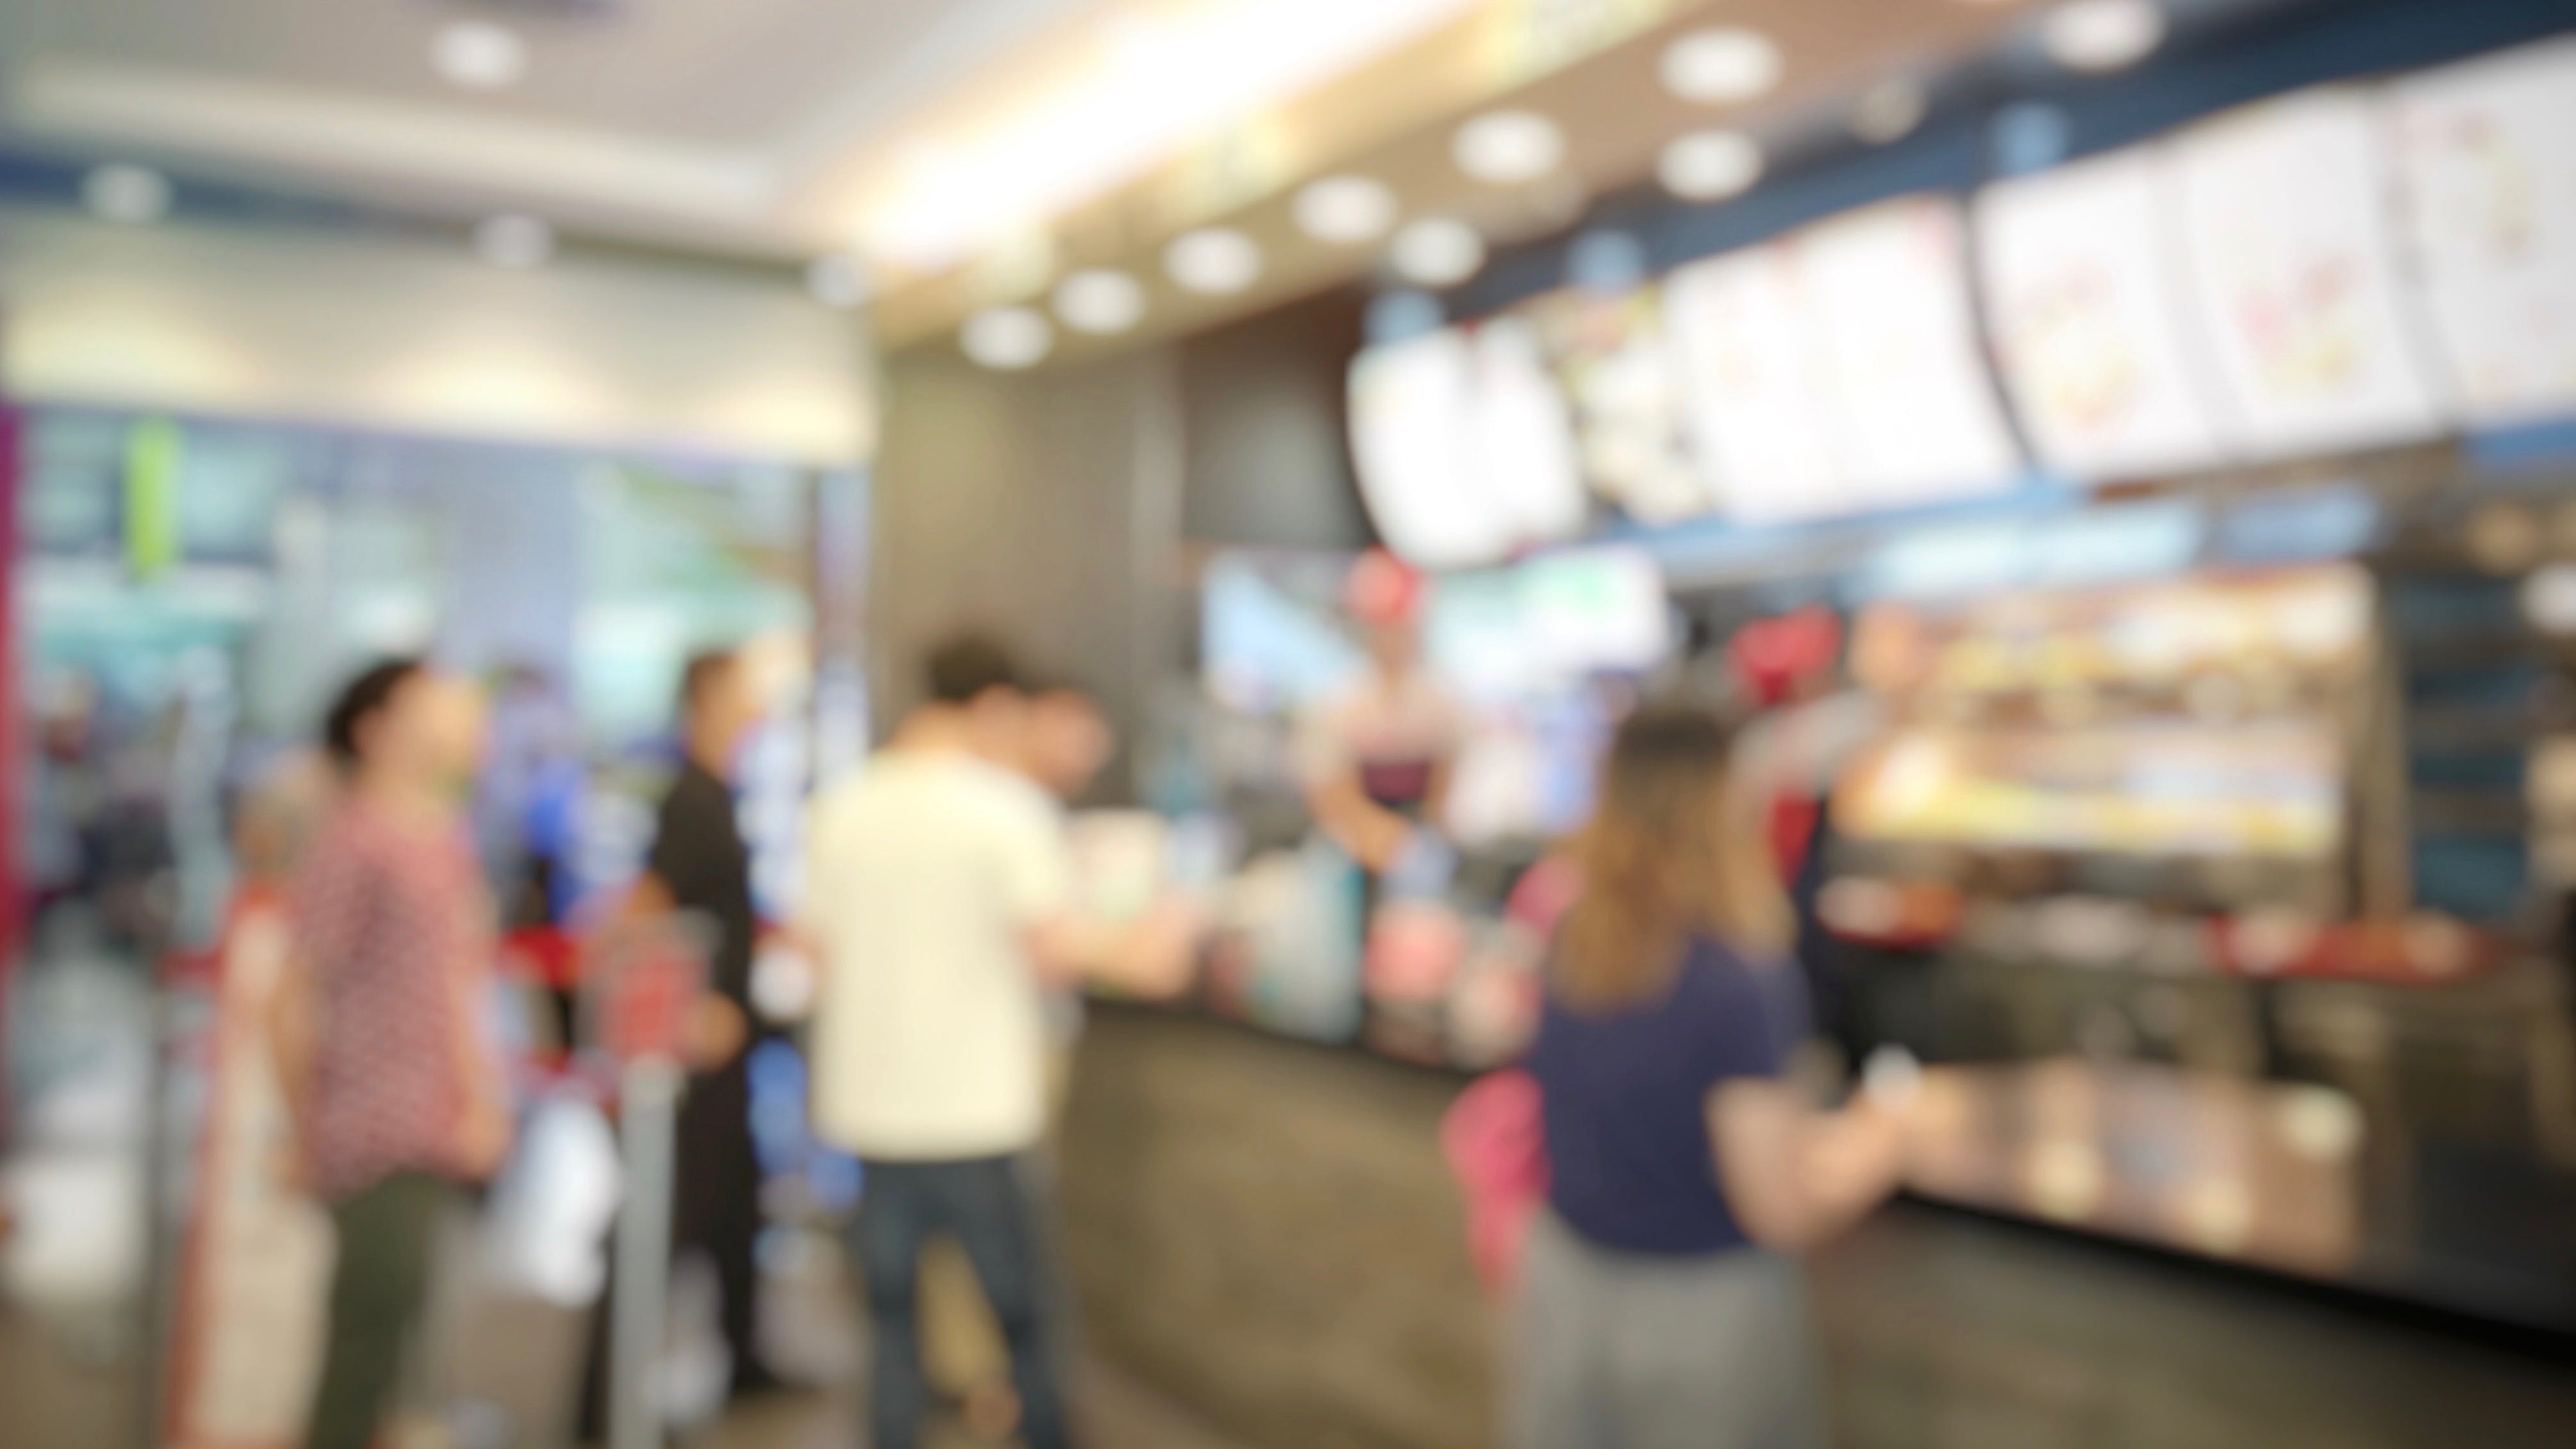 blurred abstract image of people standing for wait to order some food and make payment in fast food restaurant. Use as background image. vintage tone color and light effect.